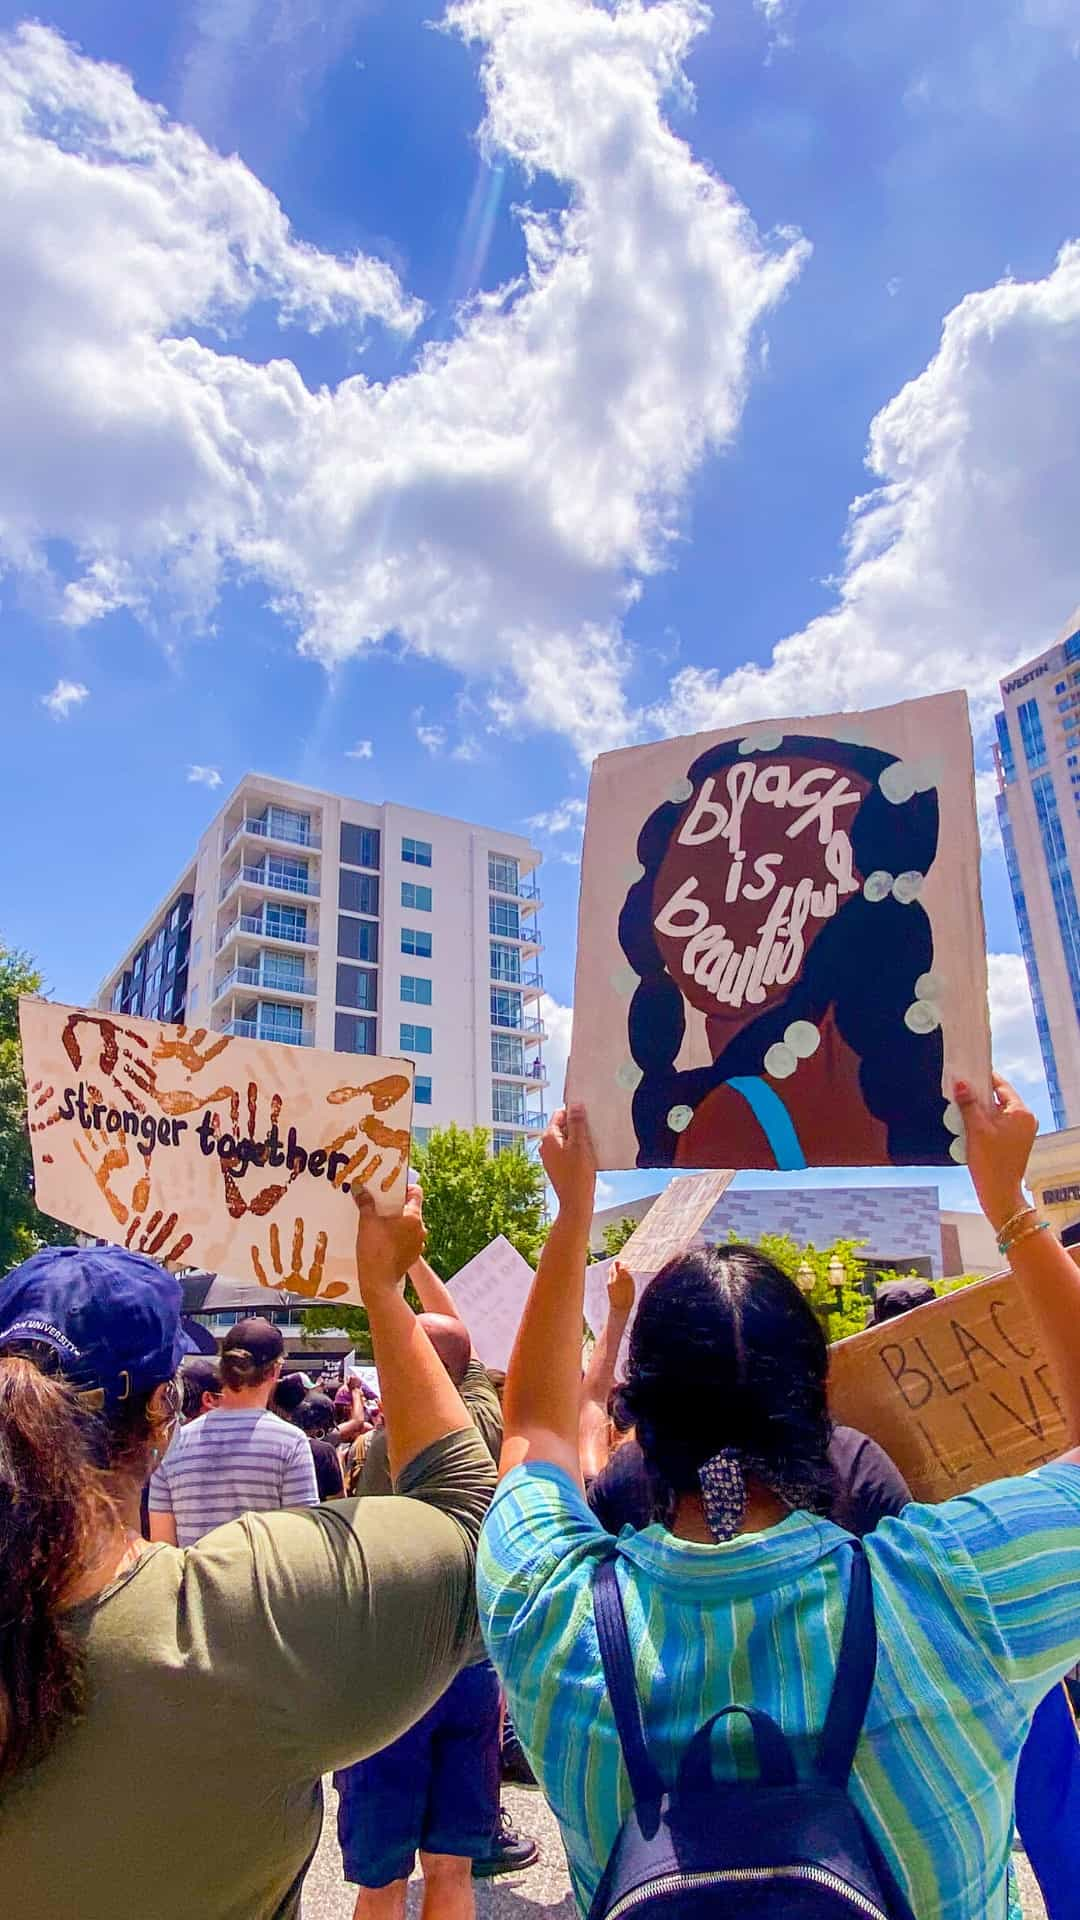 Black is Beautiful protest signs